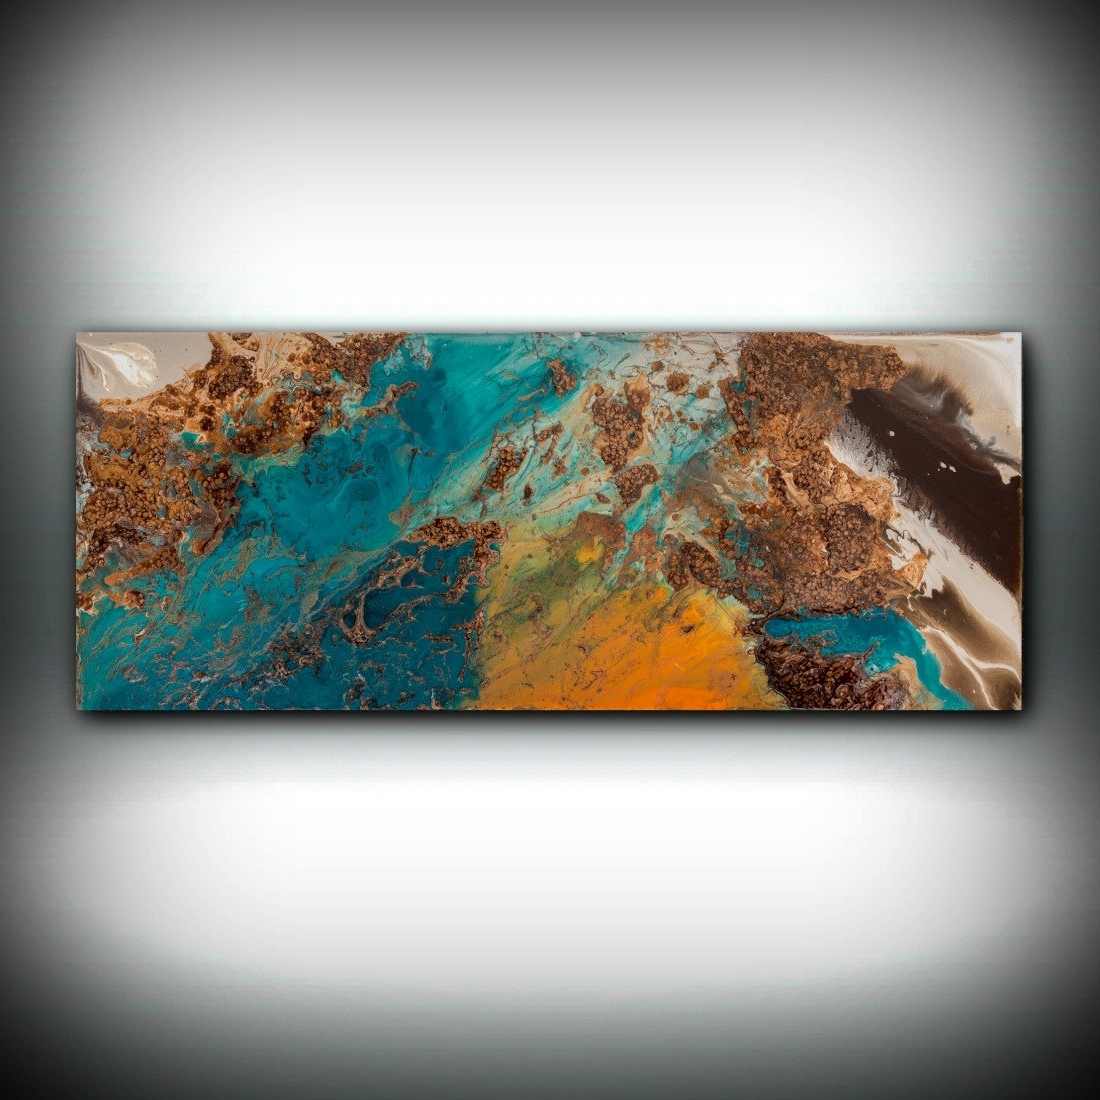 Fashionable Sale Blue And Copper Art, Wall Art Prints Fine Art Prints Abstract Within Abstract Wall Art Posters (View 8 of 15)